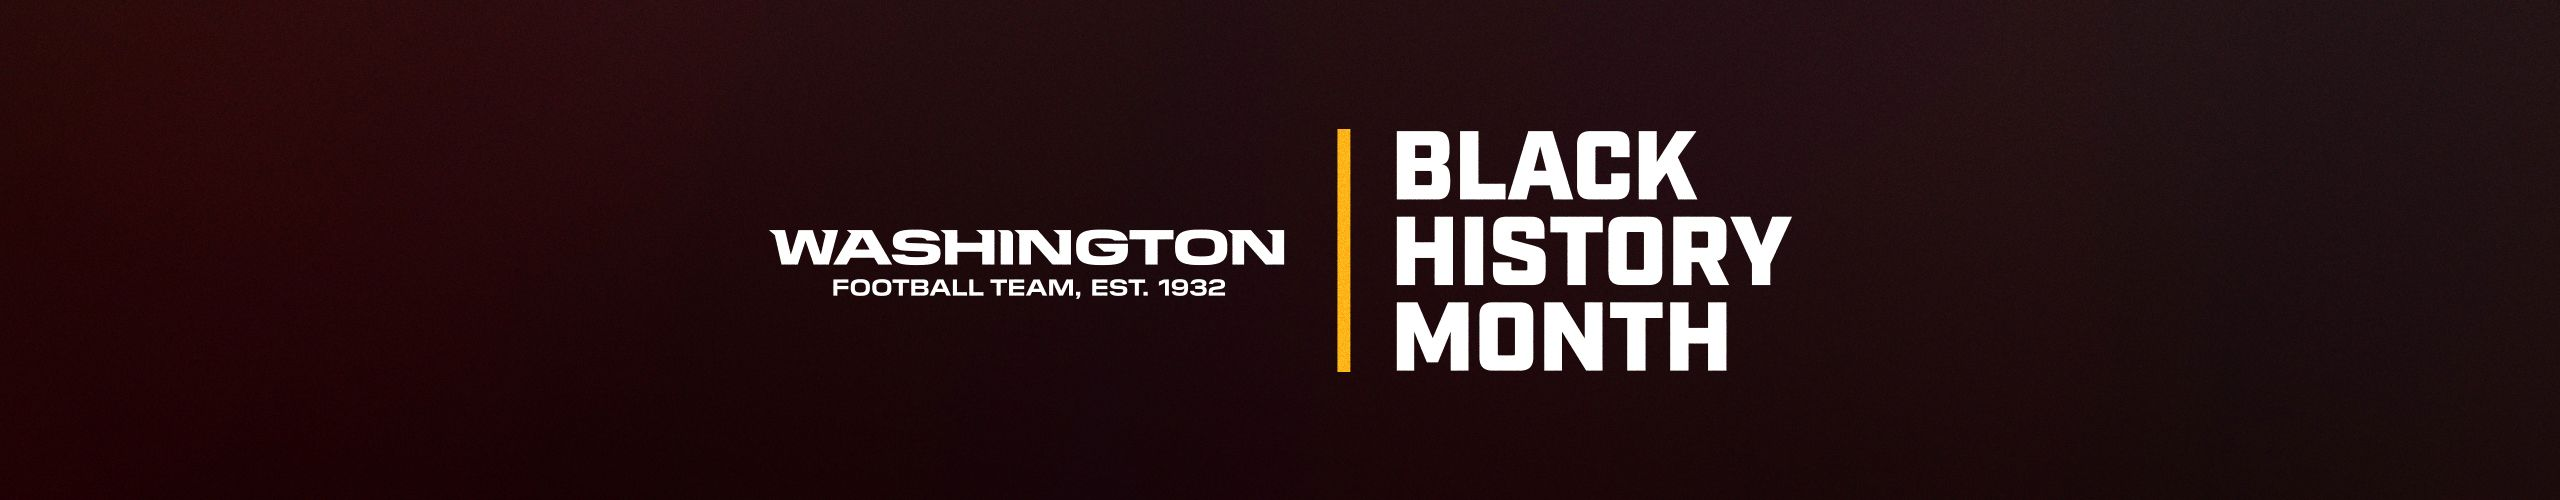 Throughout the month of February, the team will focus efforts on impactful initiatives that align with the organization's commitment to engaging with the African American community throughout the DC Metro Area. The pillars of all the team's efforts will focus on education, sports and activism, and community.